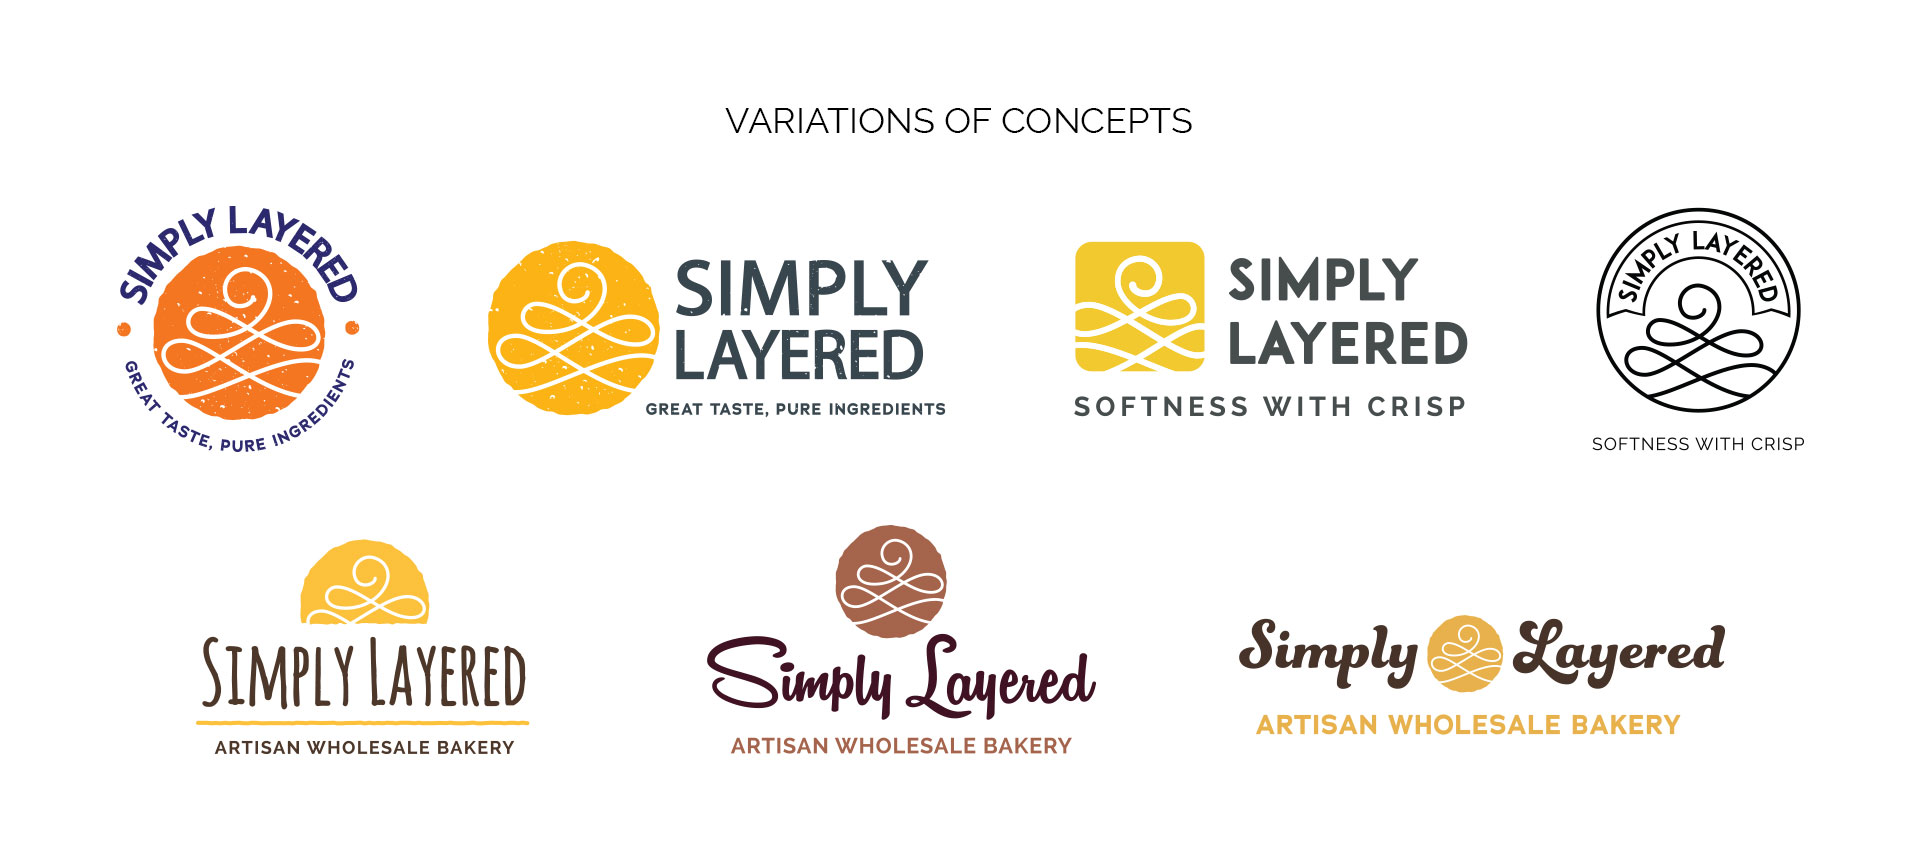 Simply-Layered-logo-concepts-slide-2